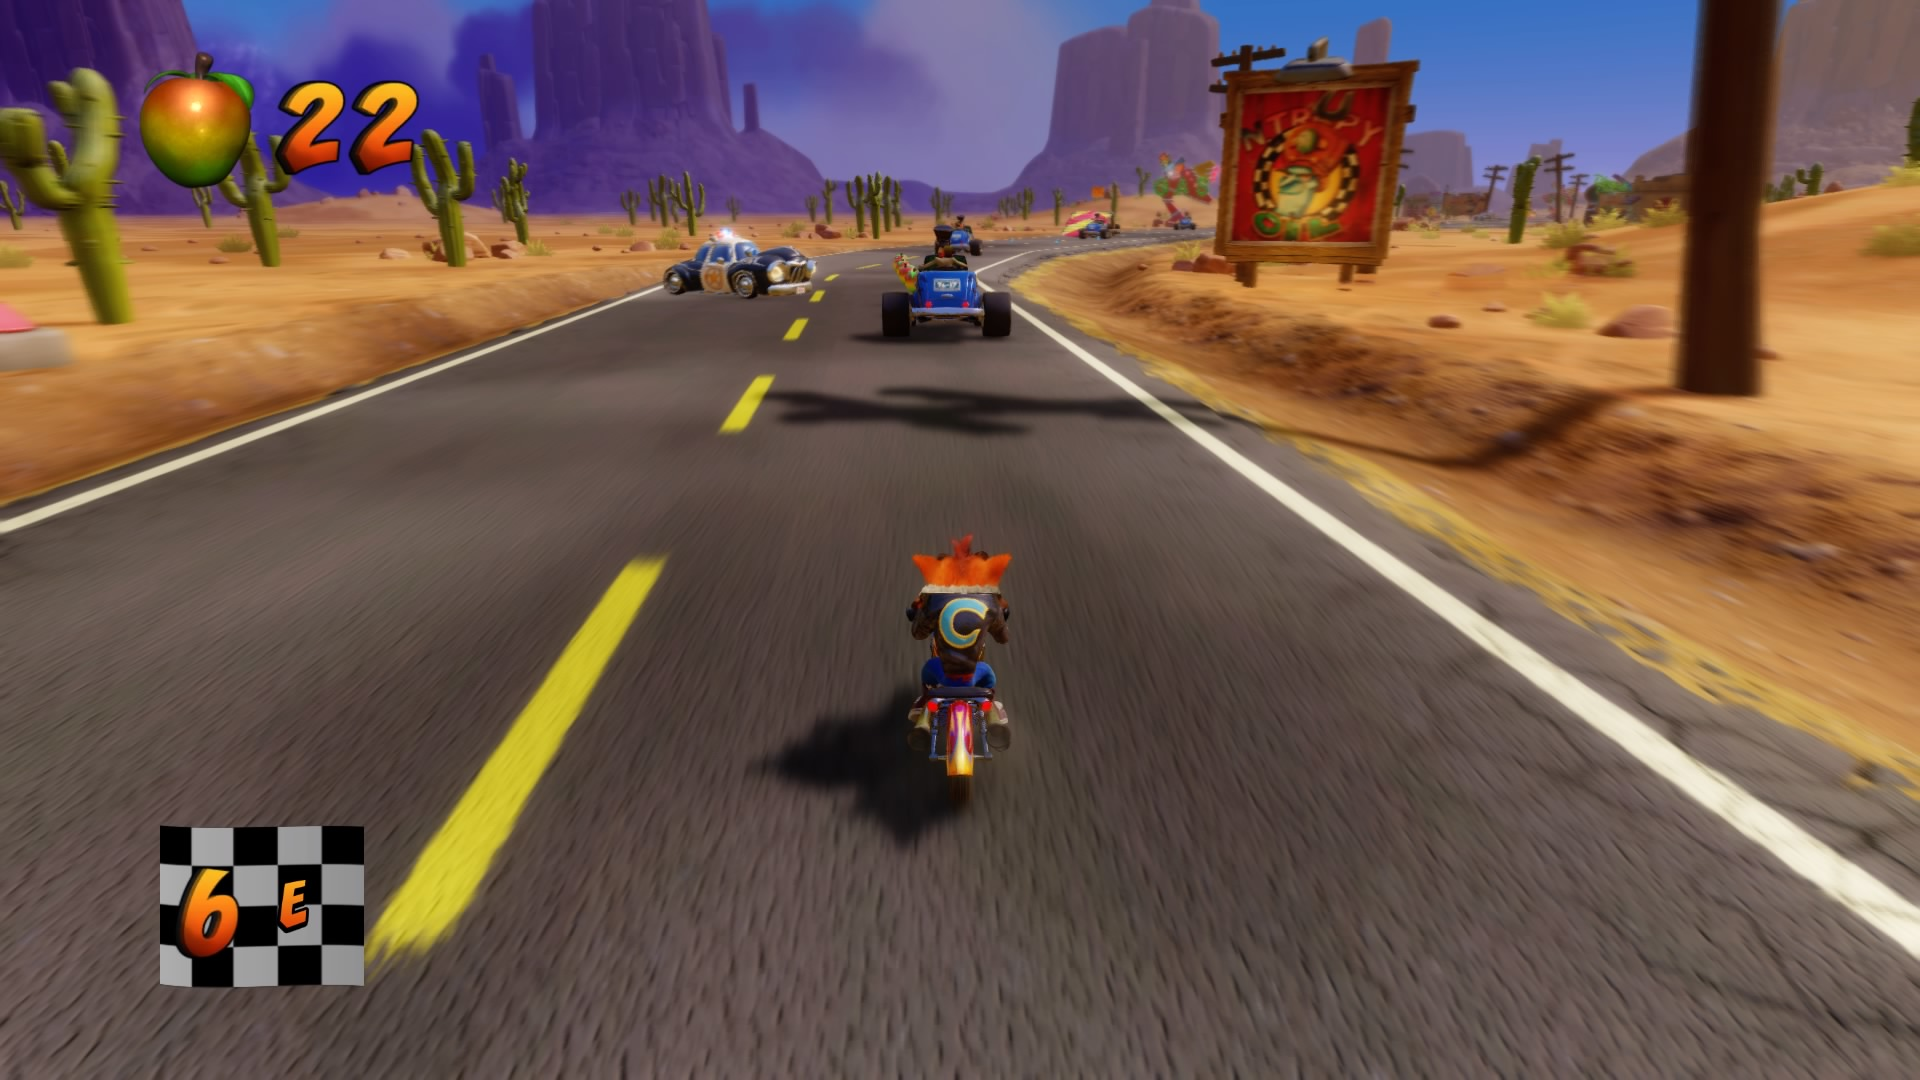 CrashBandicoot-NsaneTrilogy PS4 Test 021